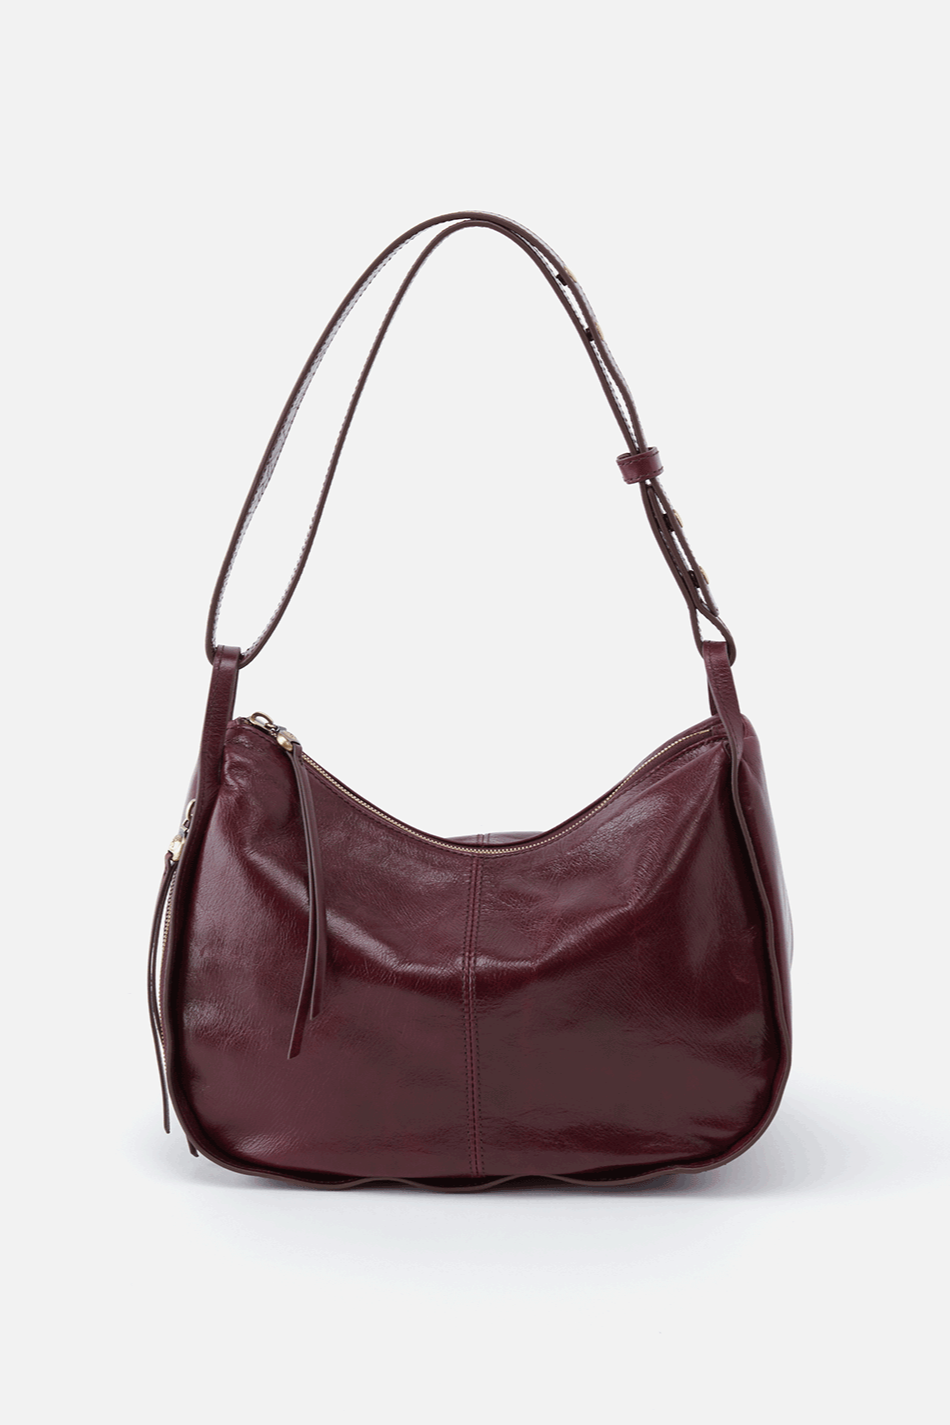 Hobobag Arlet Crossbody and Shoulder Convertible handbag in deep plum